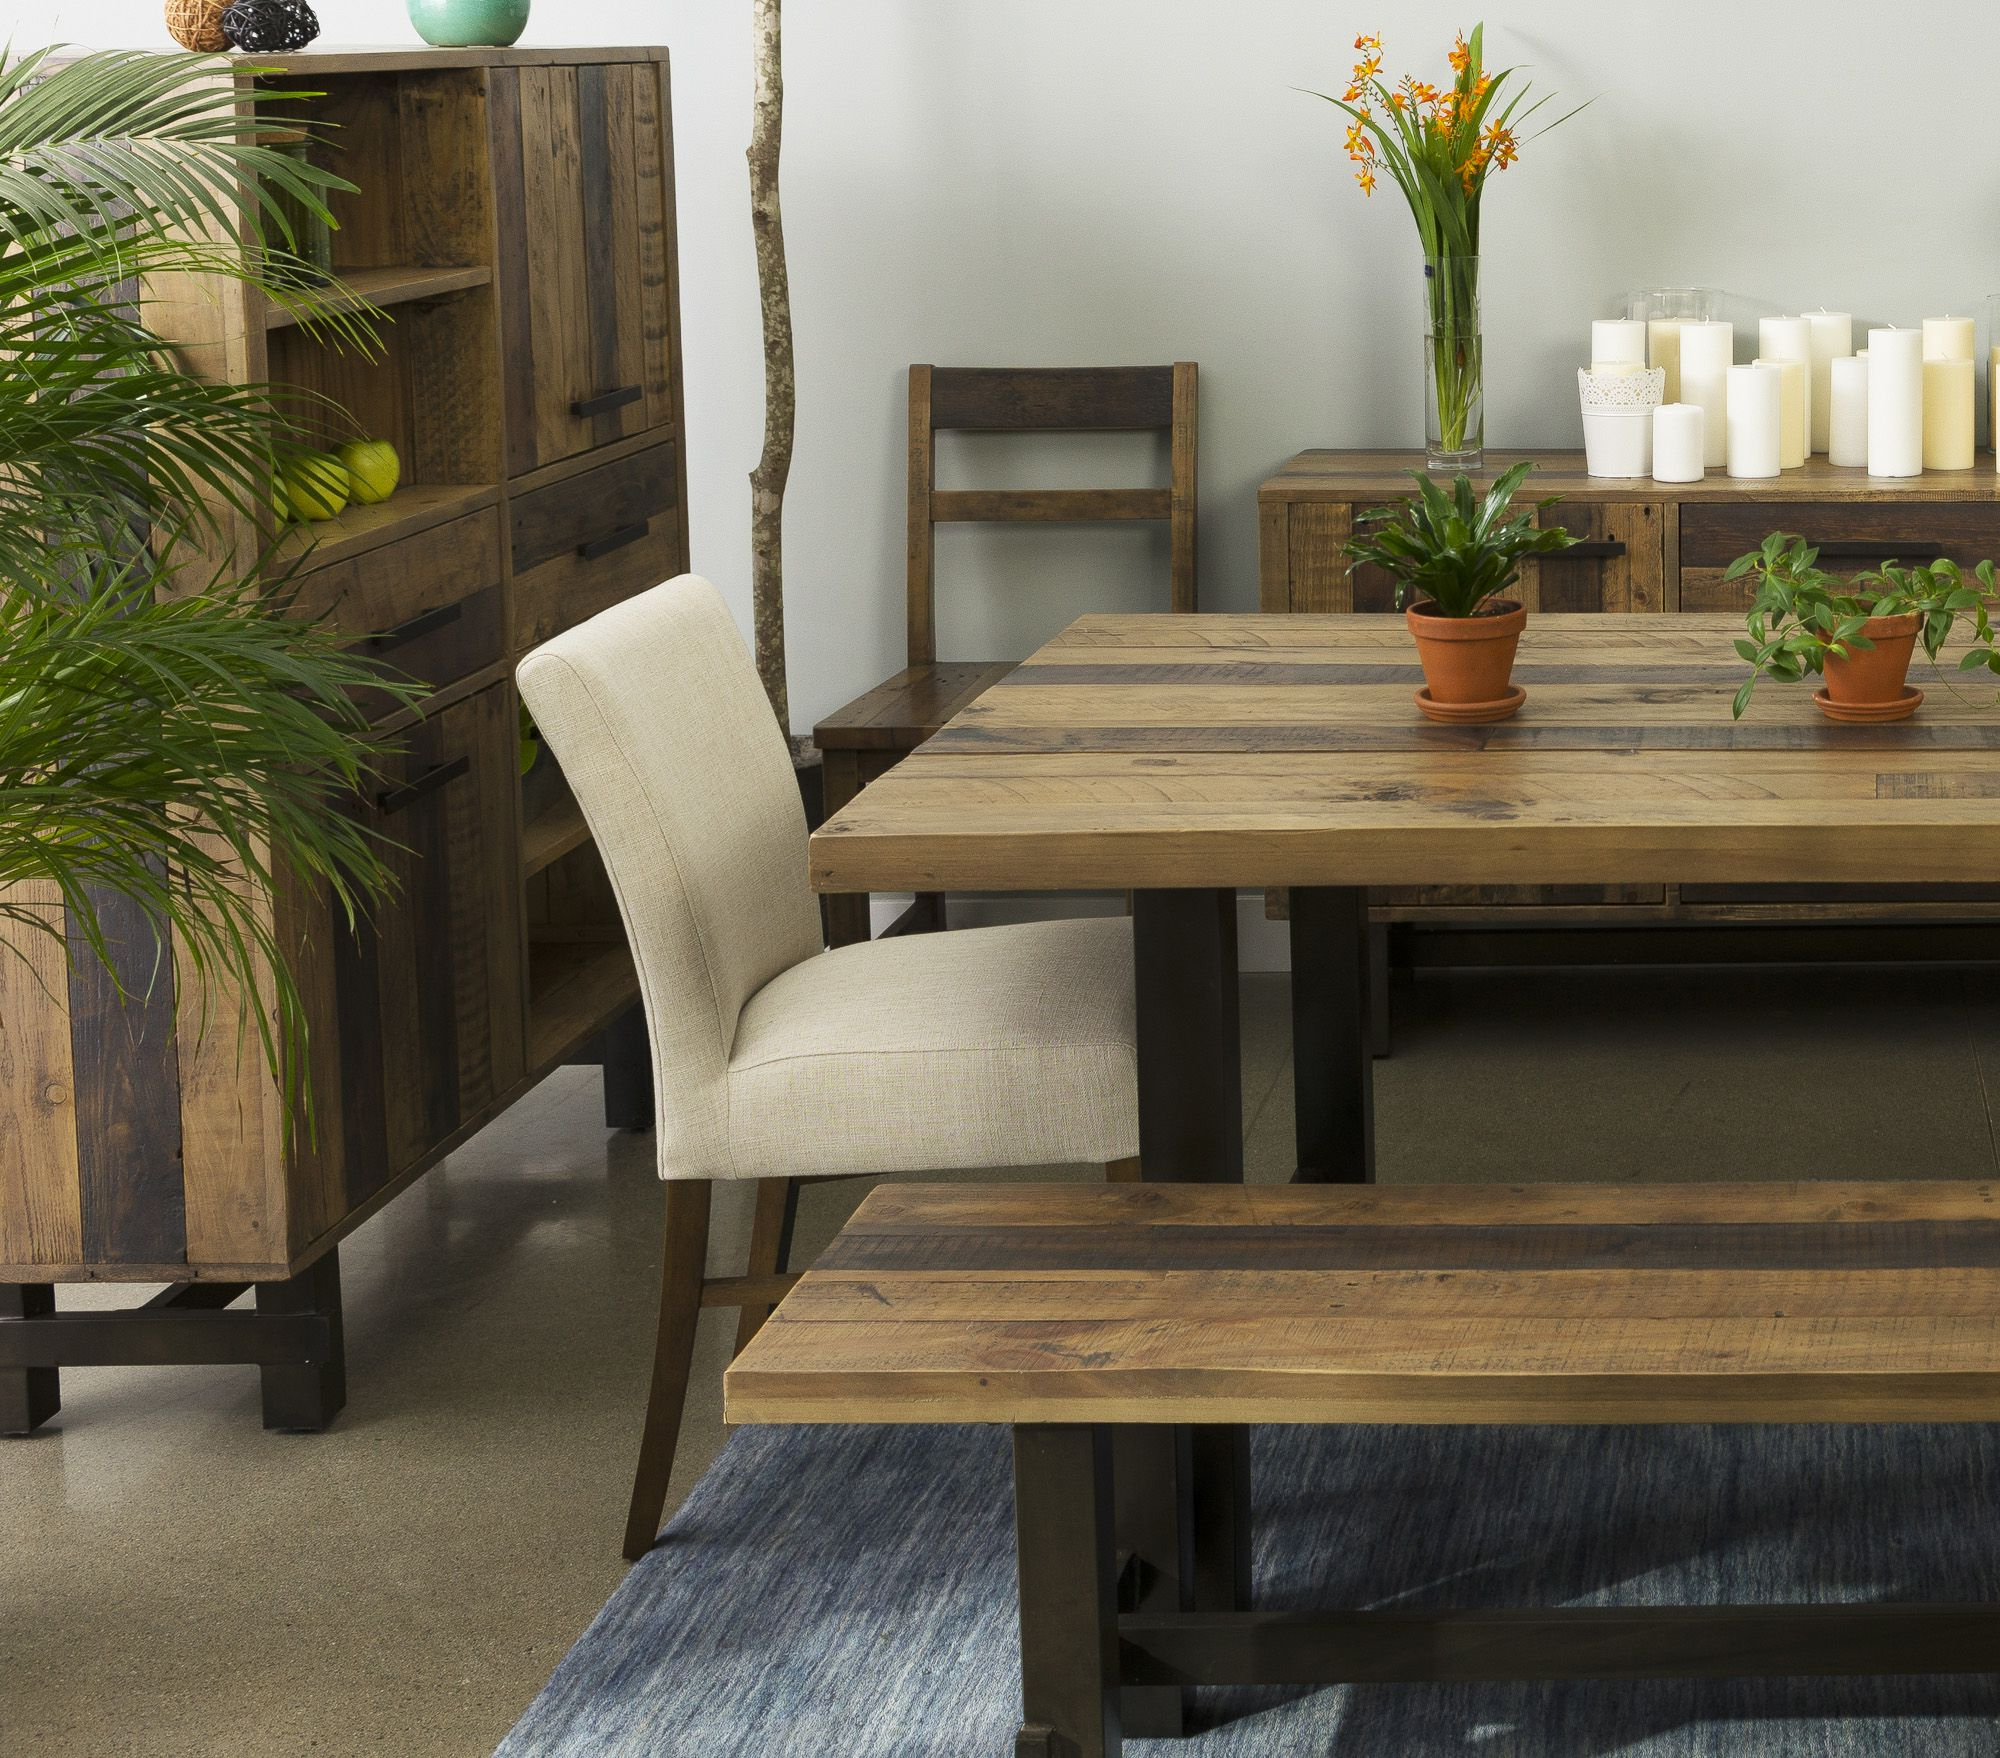 Newest Made From Recycled Pine With An Industrial Metal Base, These Pertaining To Small Dining Tables With Rustic Pine Ash Brown Finish (Gallery 5 of 30)